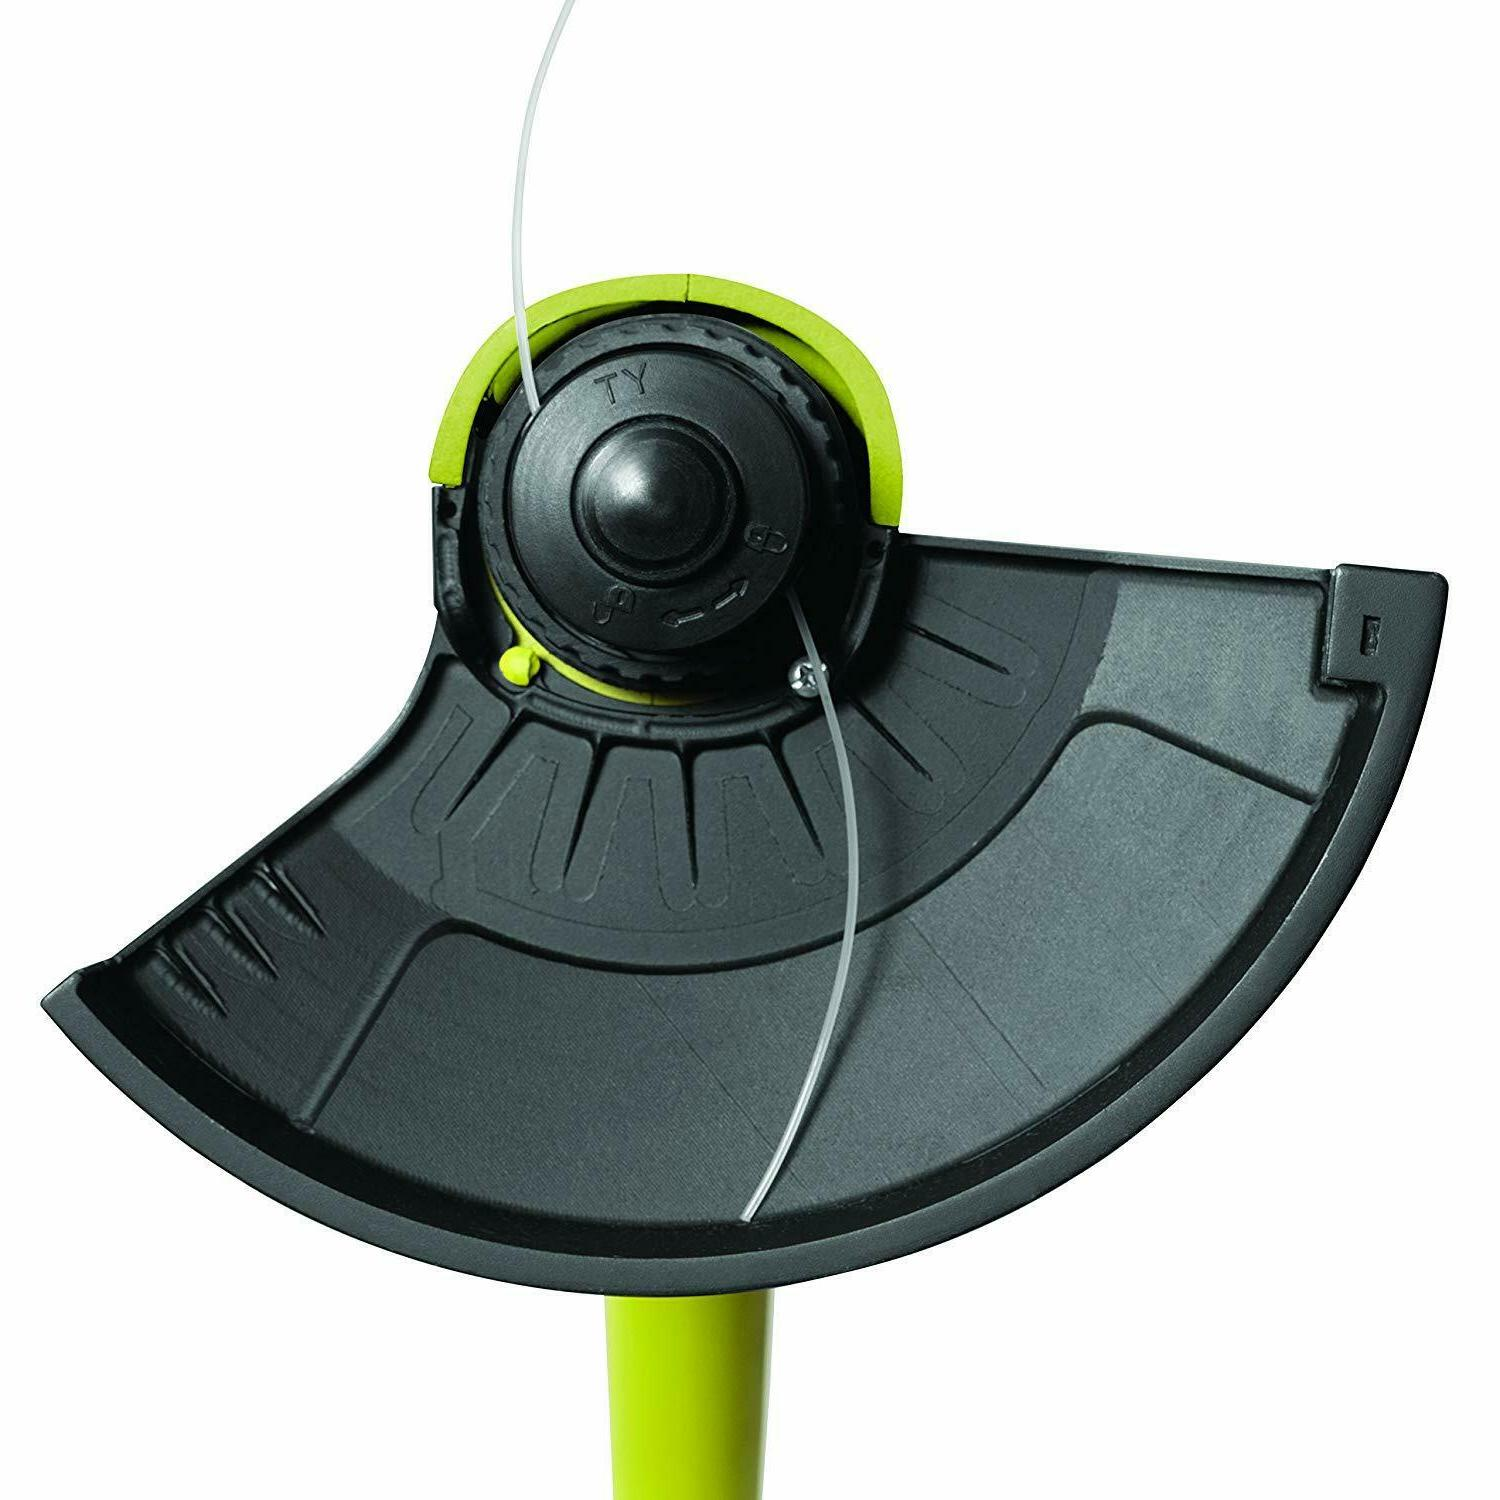 Corded Weed Eater Lightweight For Small Yard